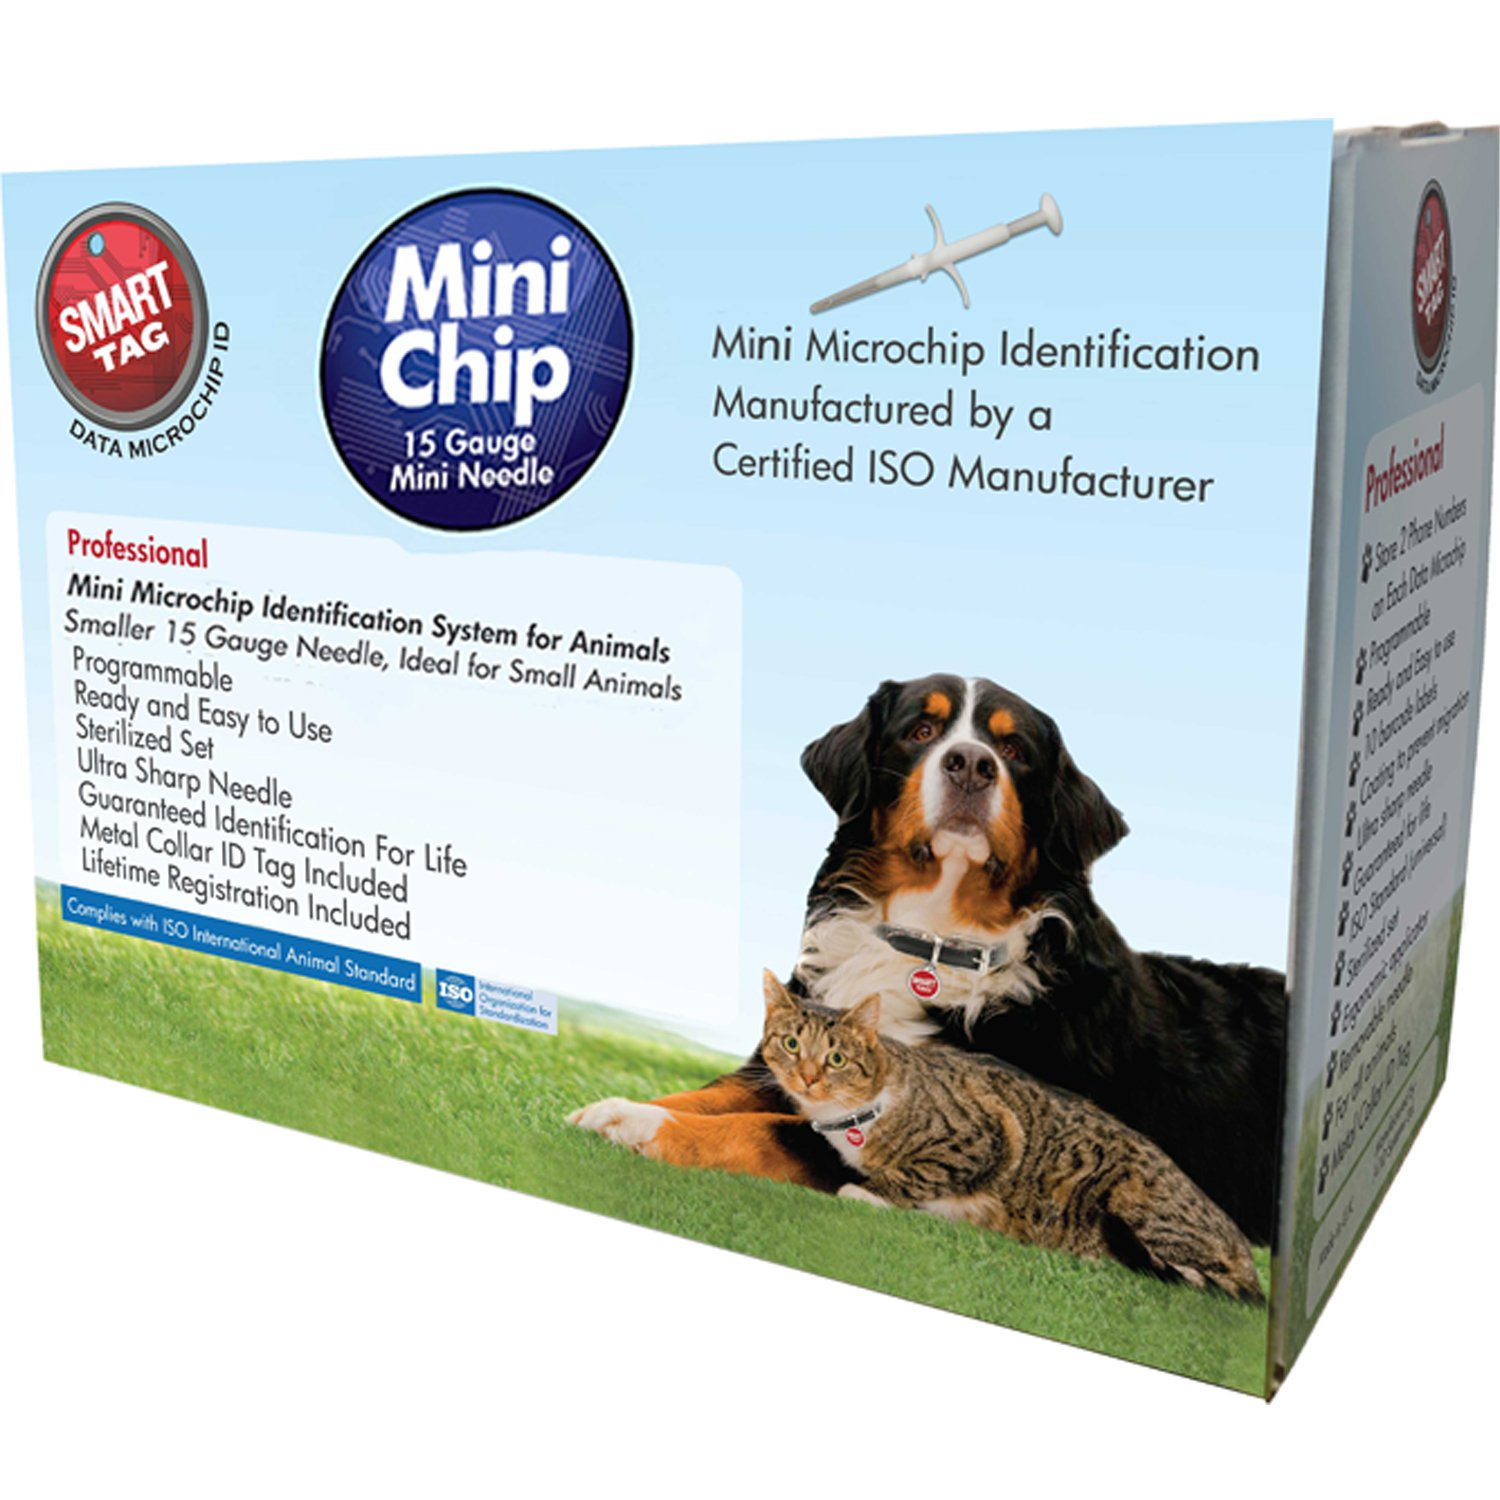 SmartTag ISO Microchip Box with Identification Tag for Pets, Mini by Smart Tag